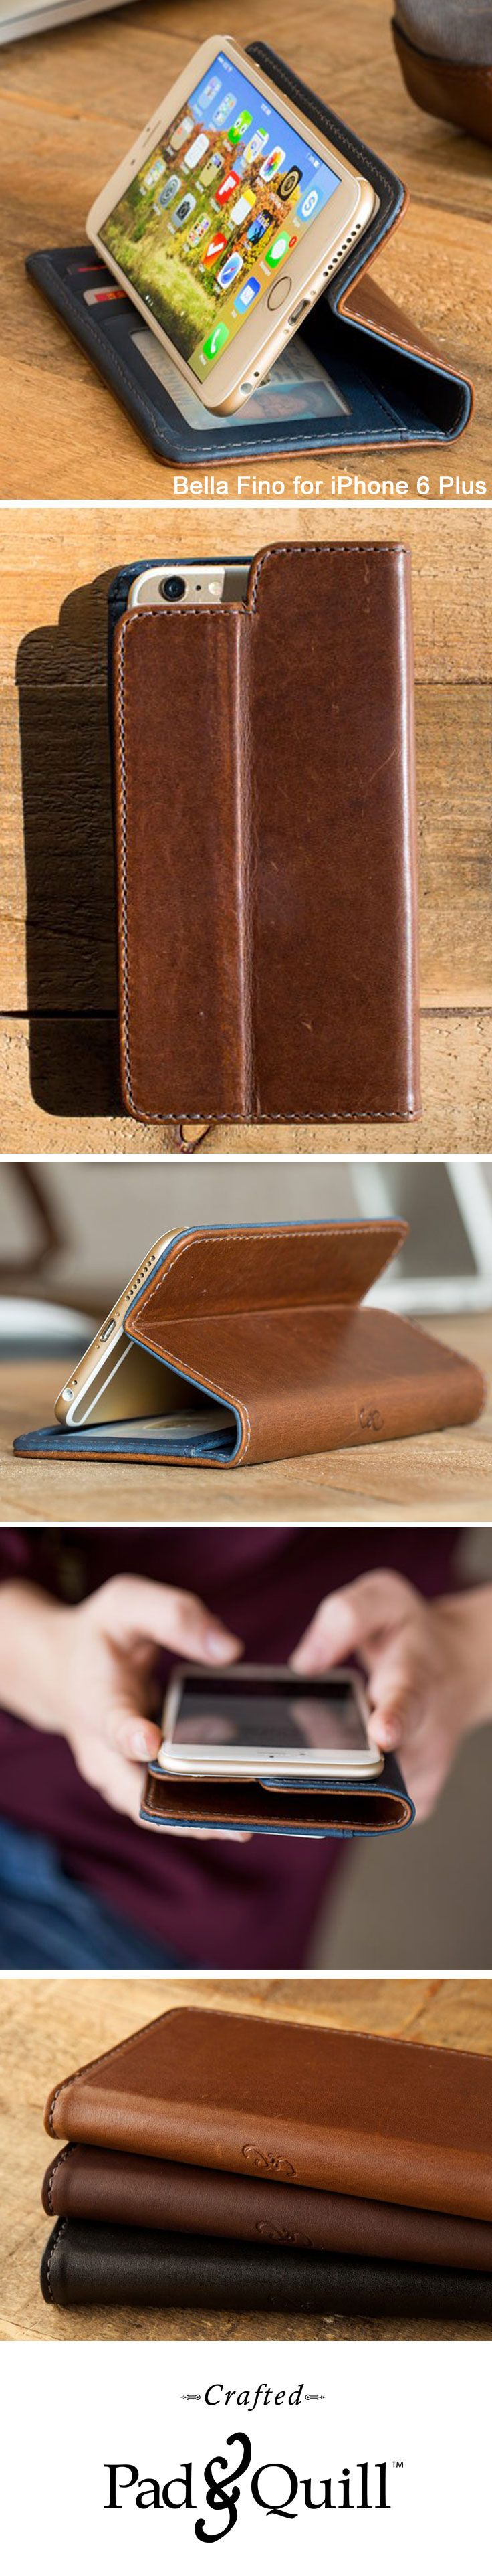 The Bella Vida is a self-propping, luxury leather wallet case for iPhone 6 Plus, tucked with french hemmed seams, constructed from the best American full grain leather, and designed with pockets to accommodate your every day essentials. www.PadandQuill.com